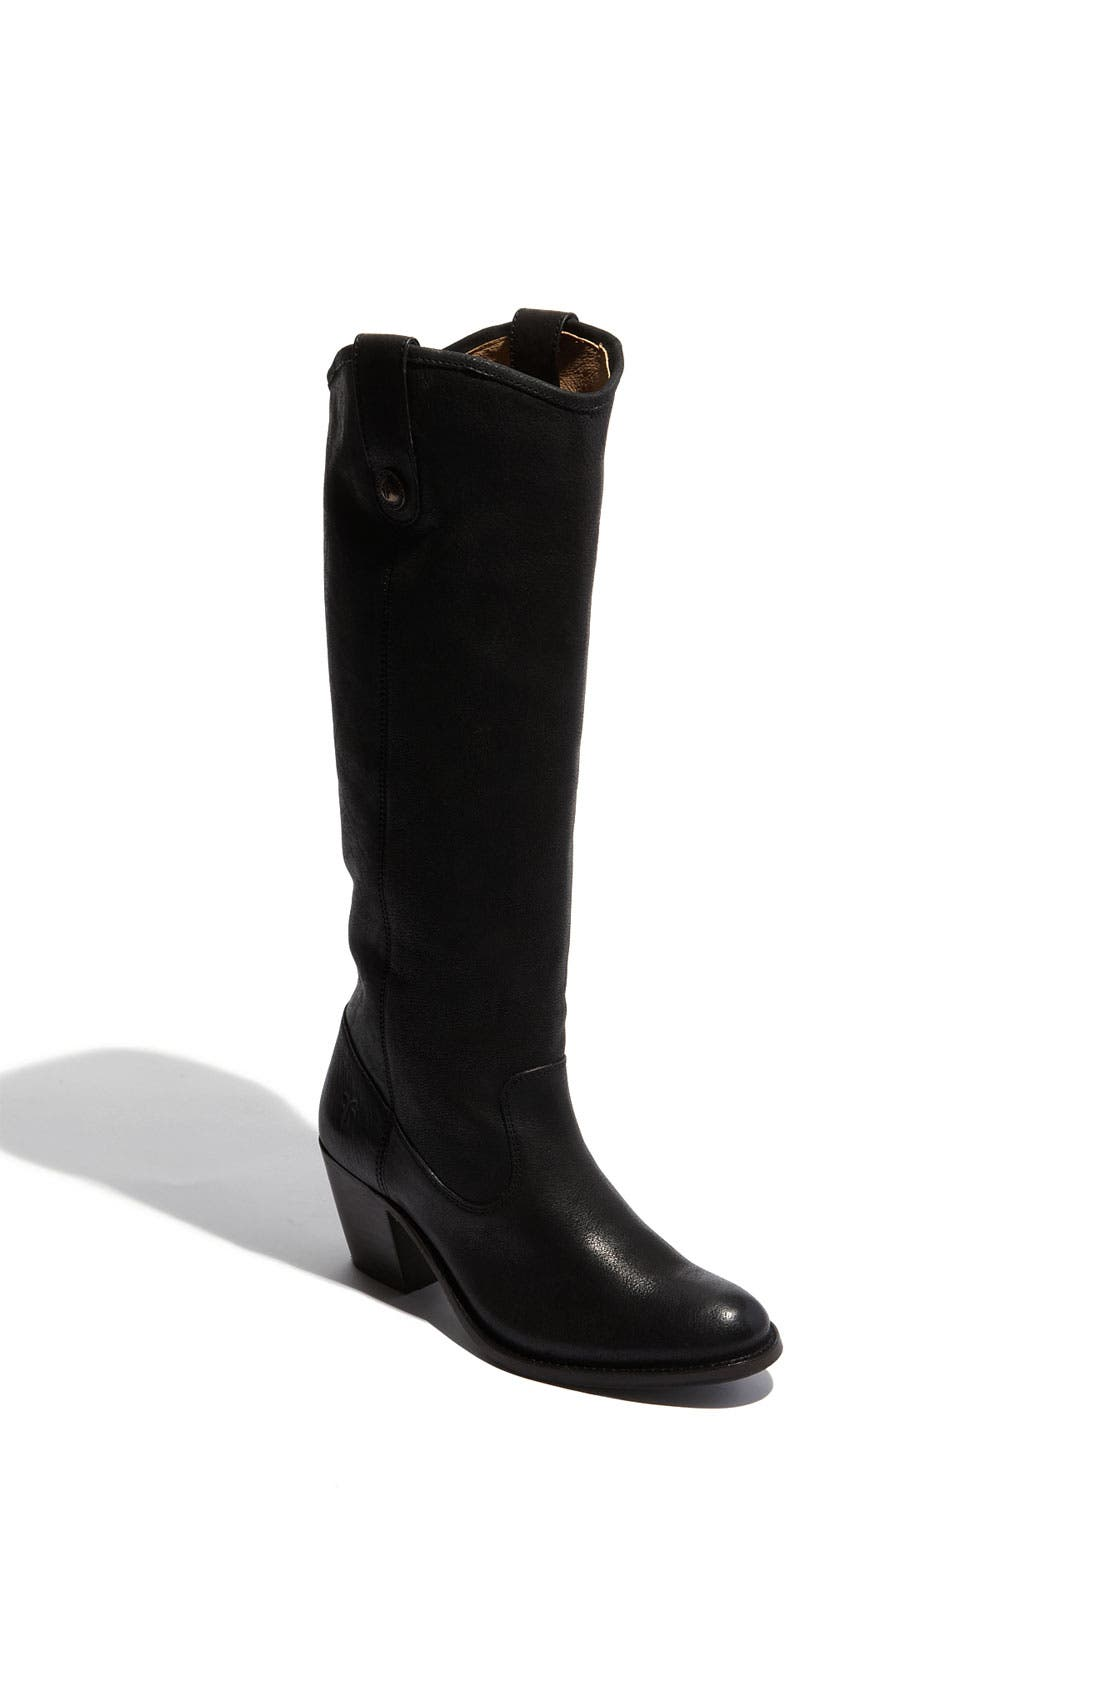 Alternate Image 1 Selected - Frye 'Jackie Button' Leather Riding Boot